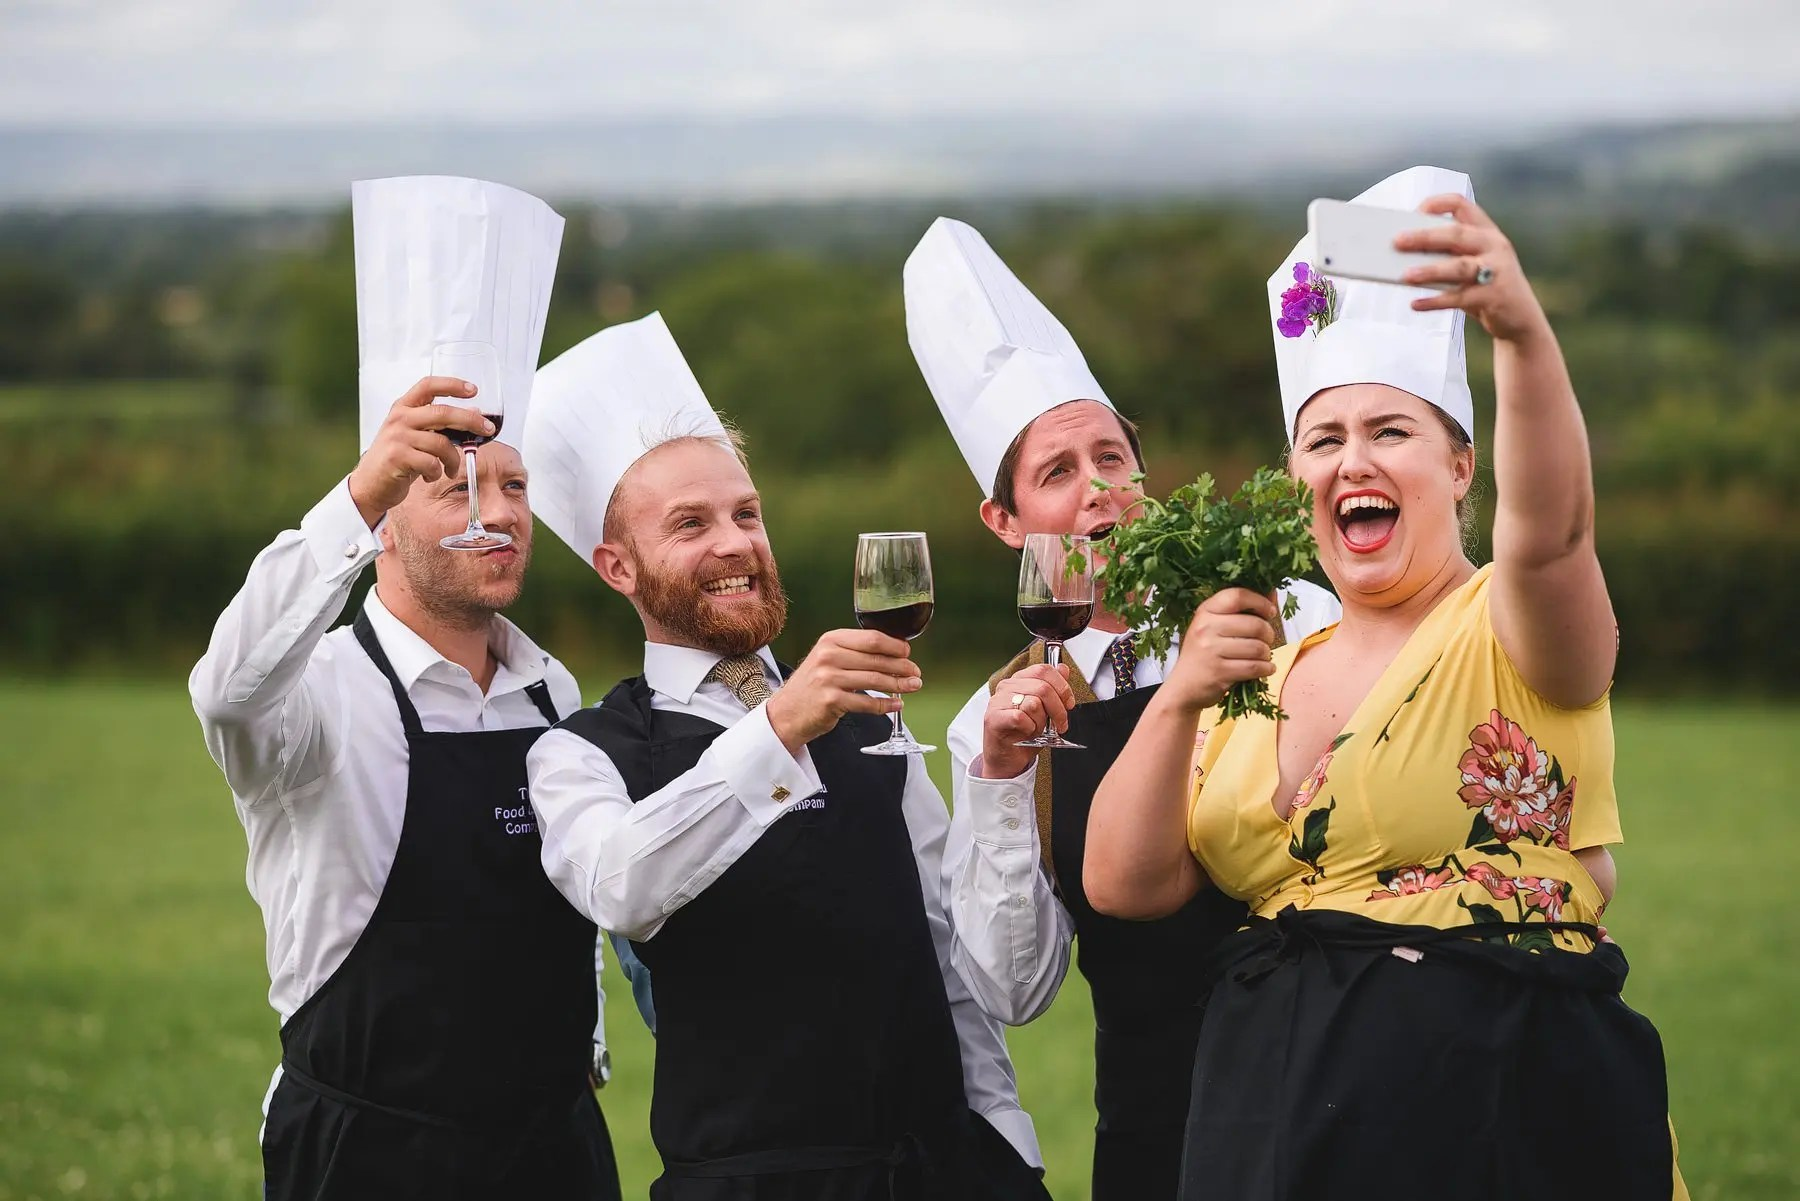 chefs at a wedding